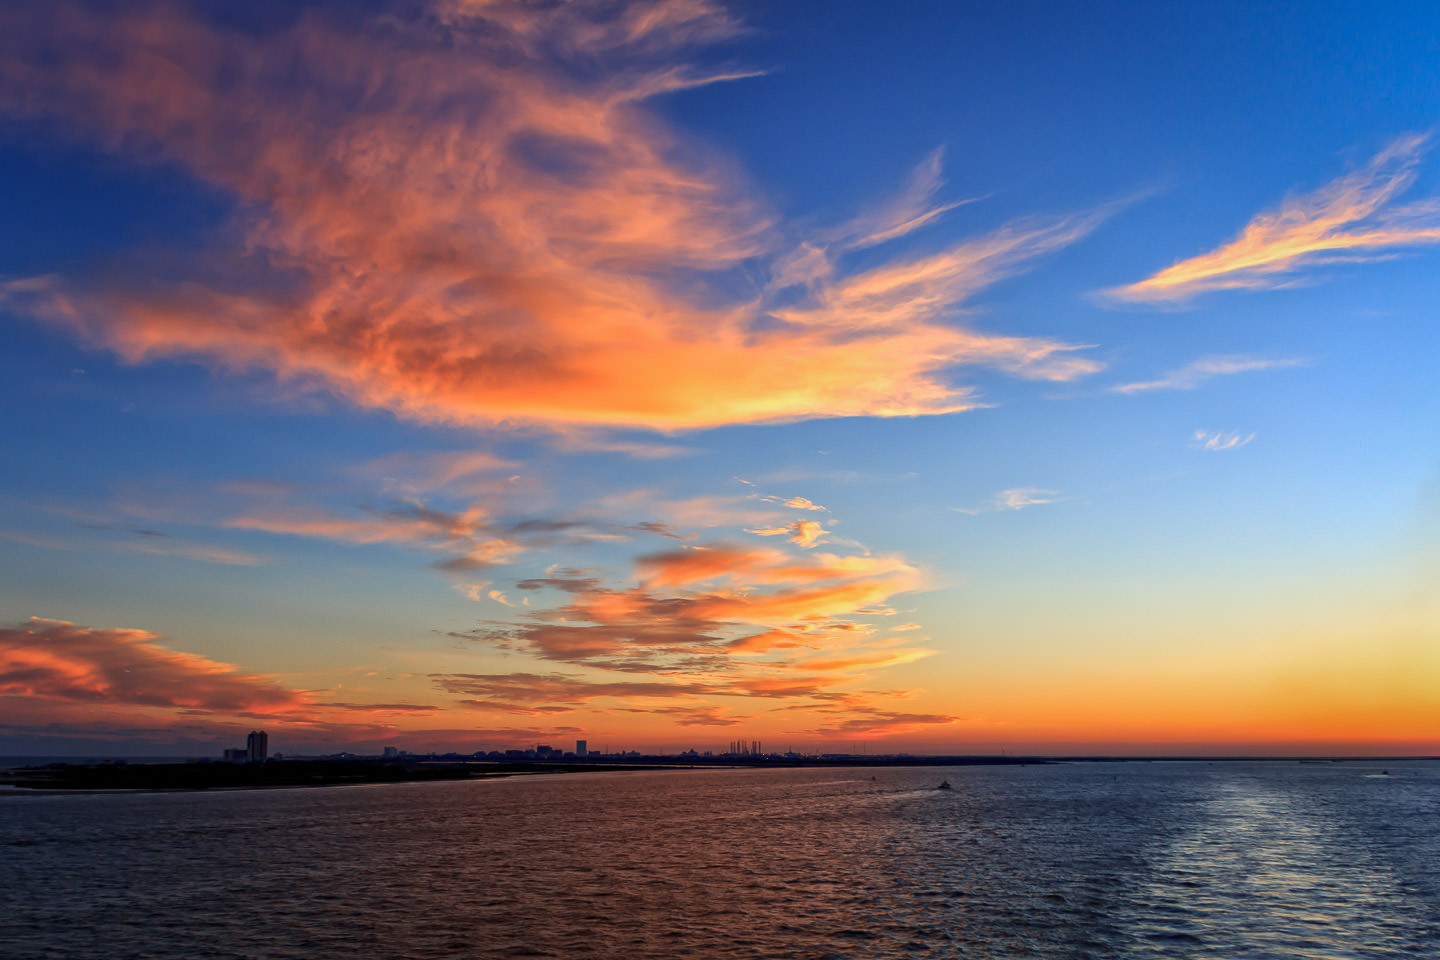 Clouds illuminated by the setting sun over Galveston Bay, Texas.